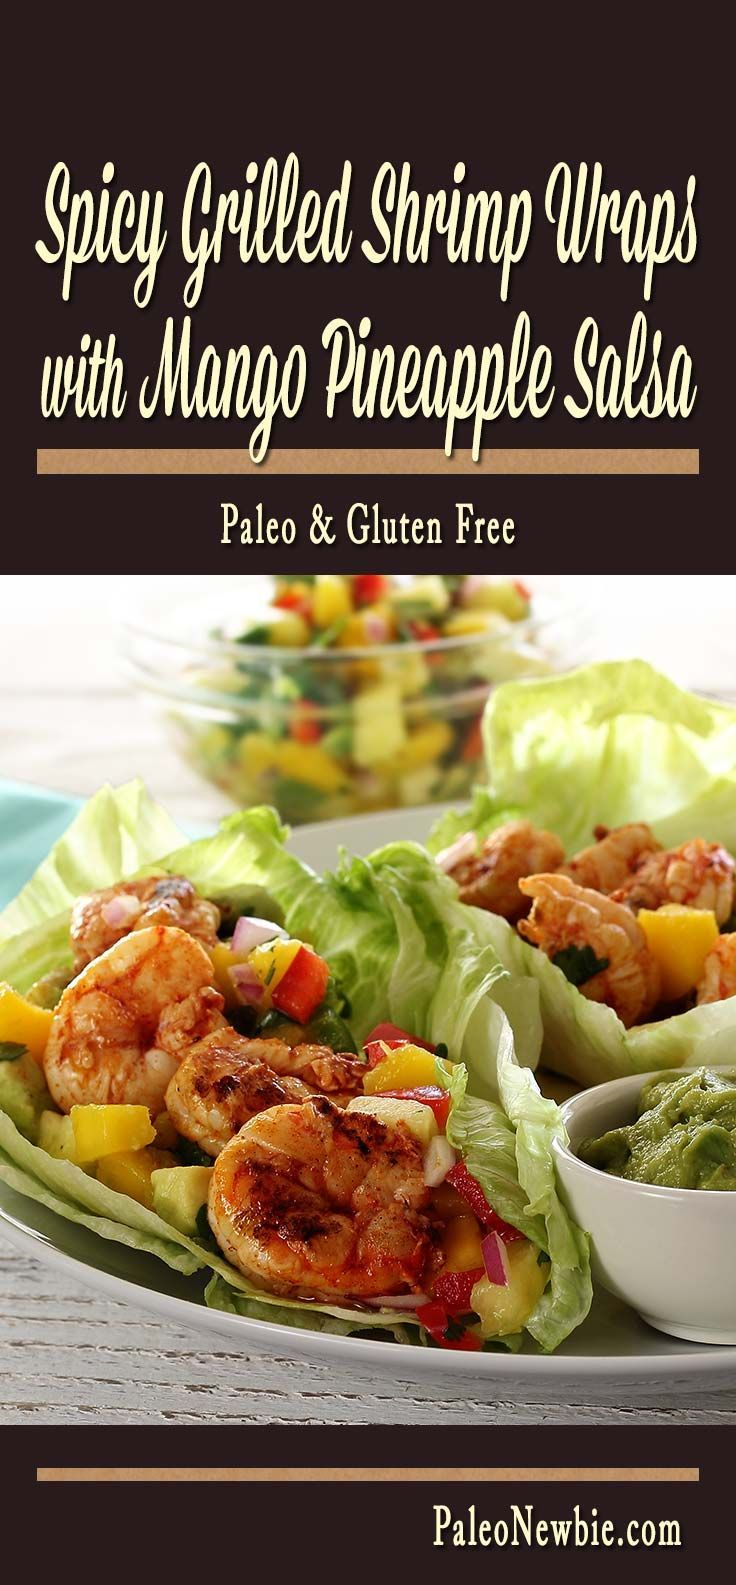 Light and delicious shrimp wraps with a little kick, topped with a refreshing salsa, and rolled up in crispy lettuce. So good!